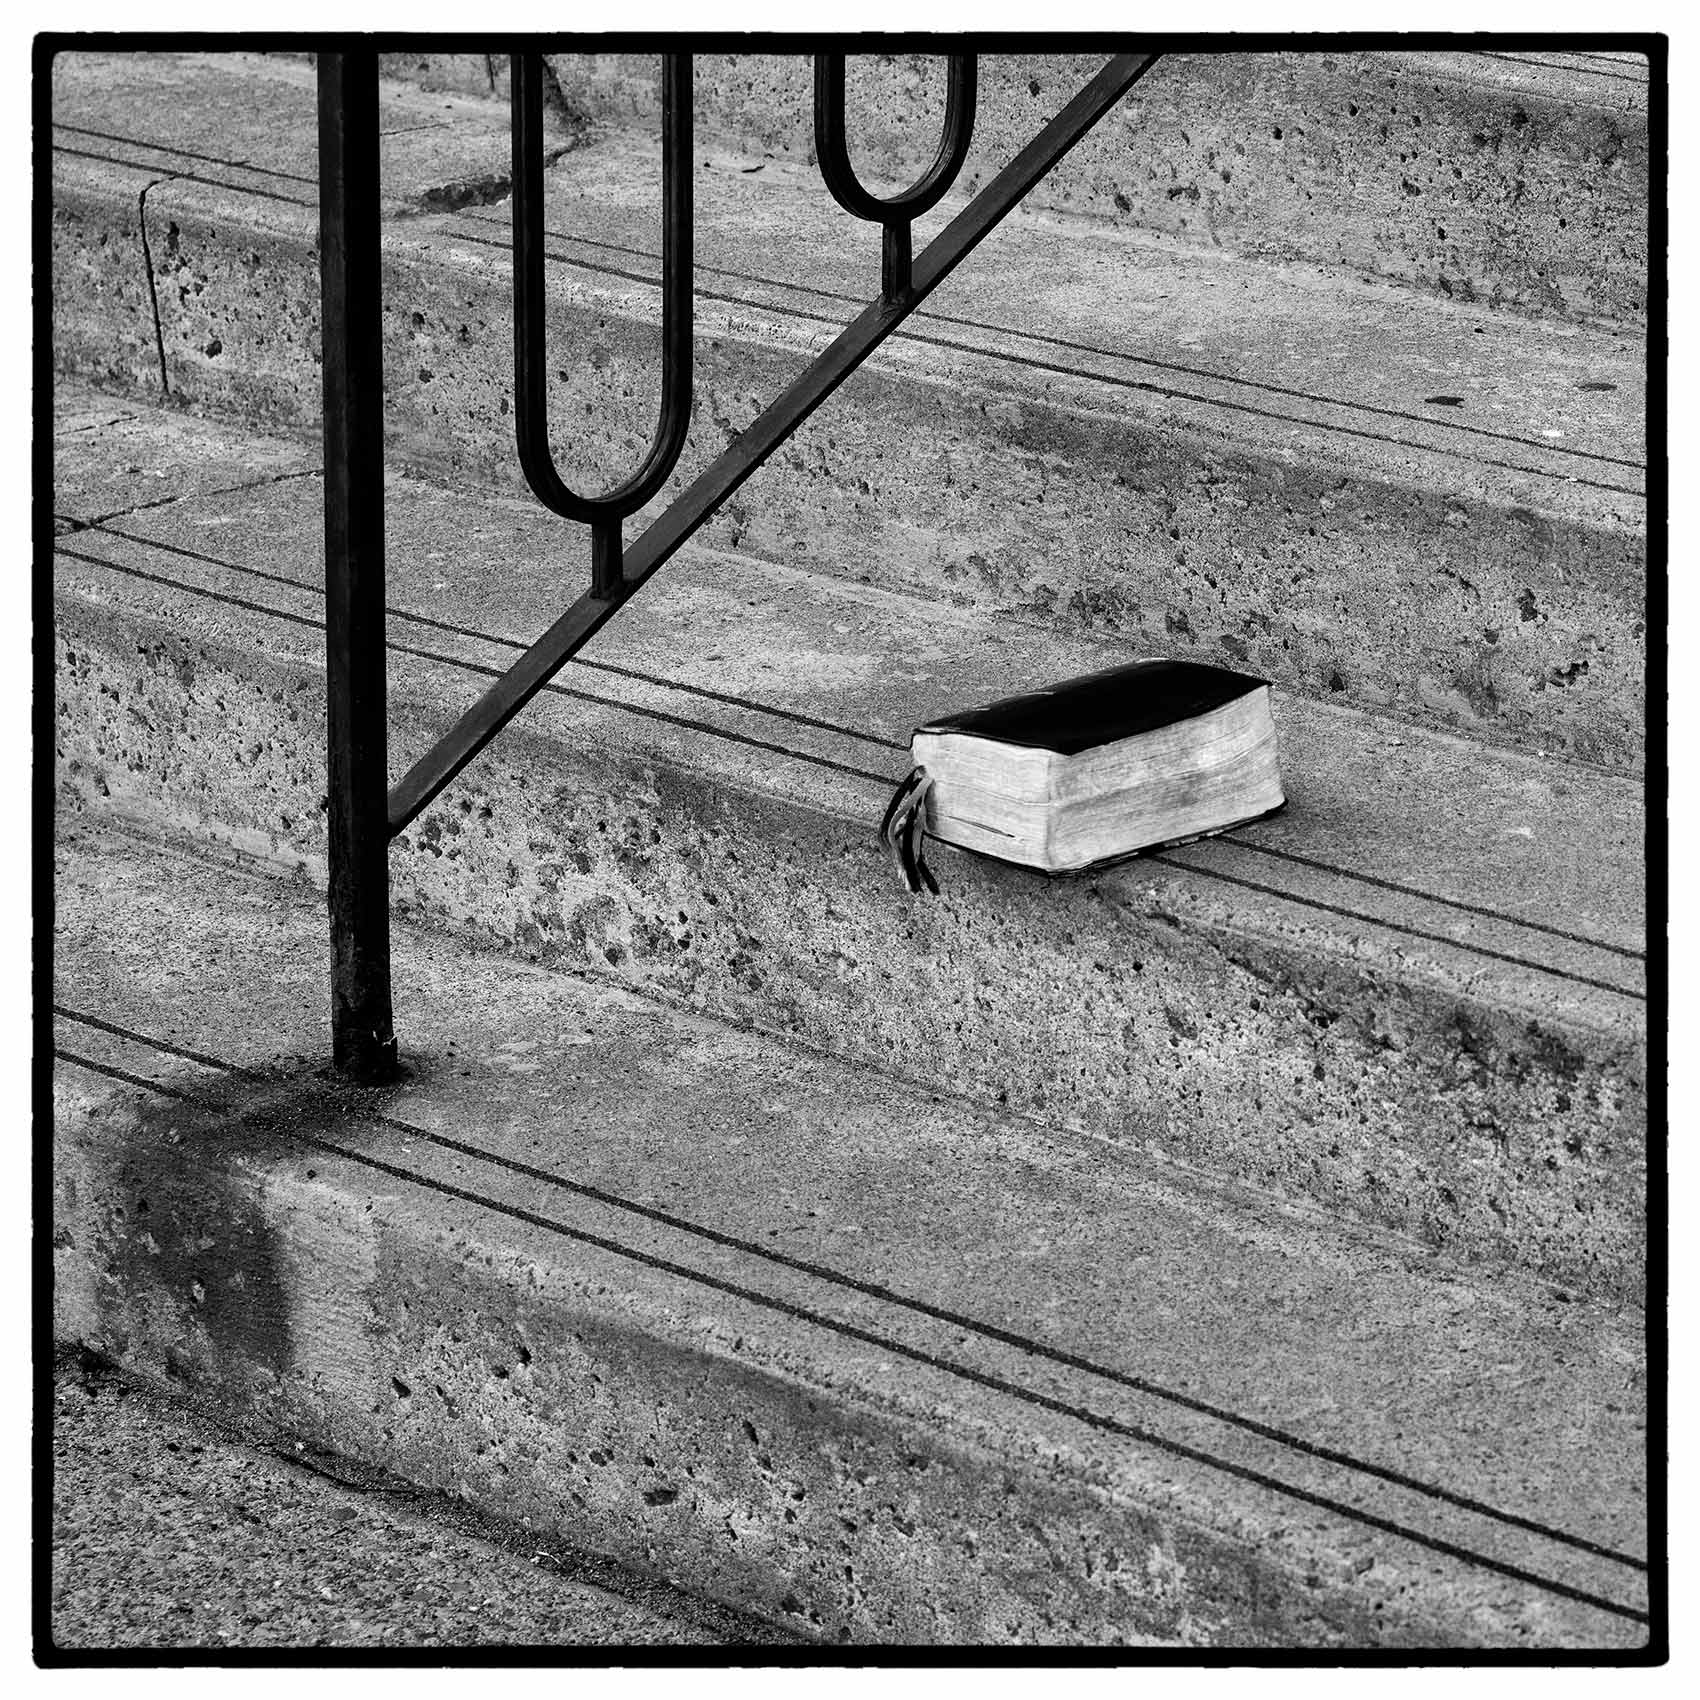 an old bible lays on the stairs of holy family church during the lockdown in toronto